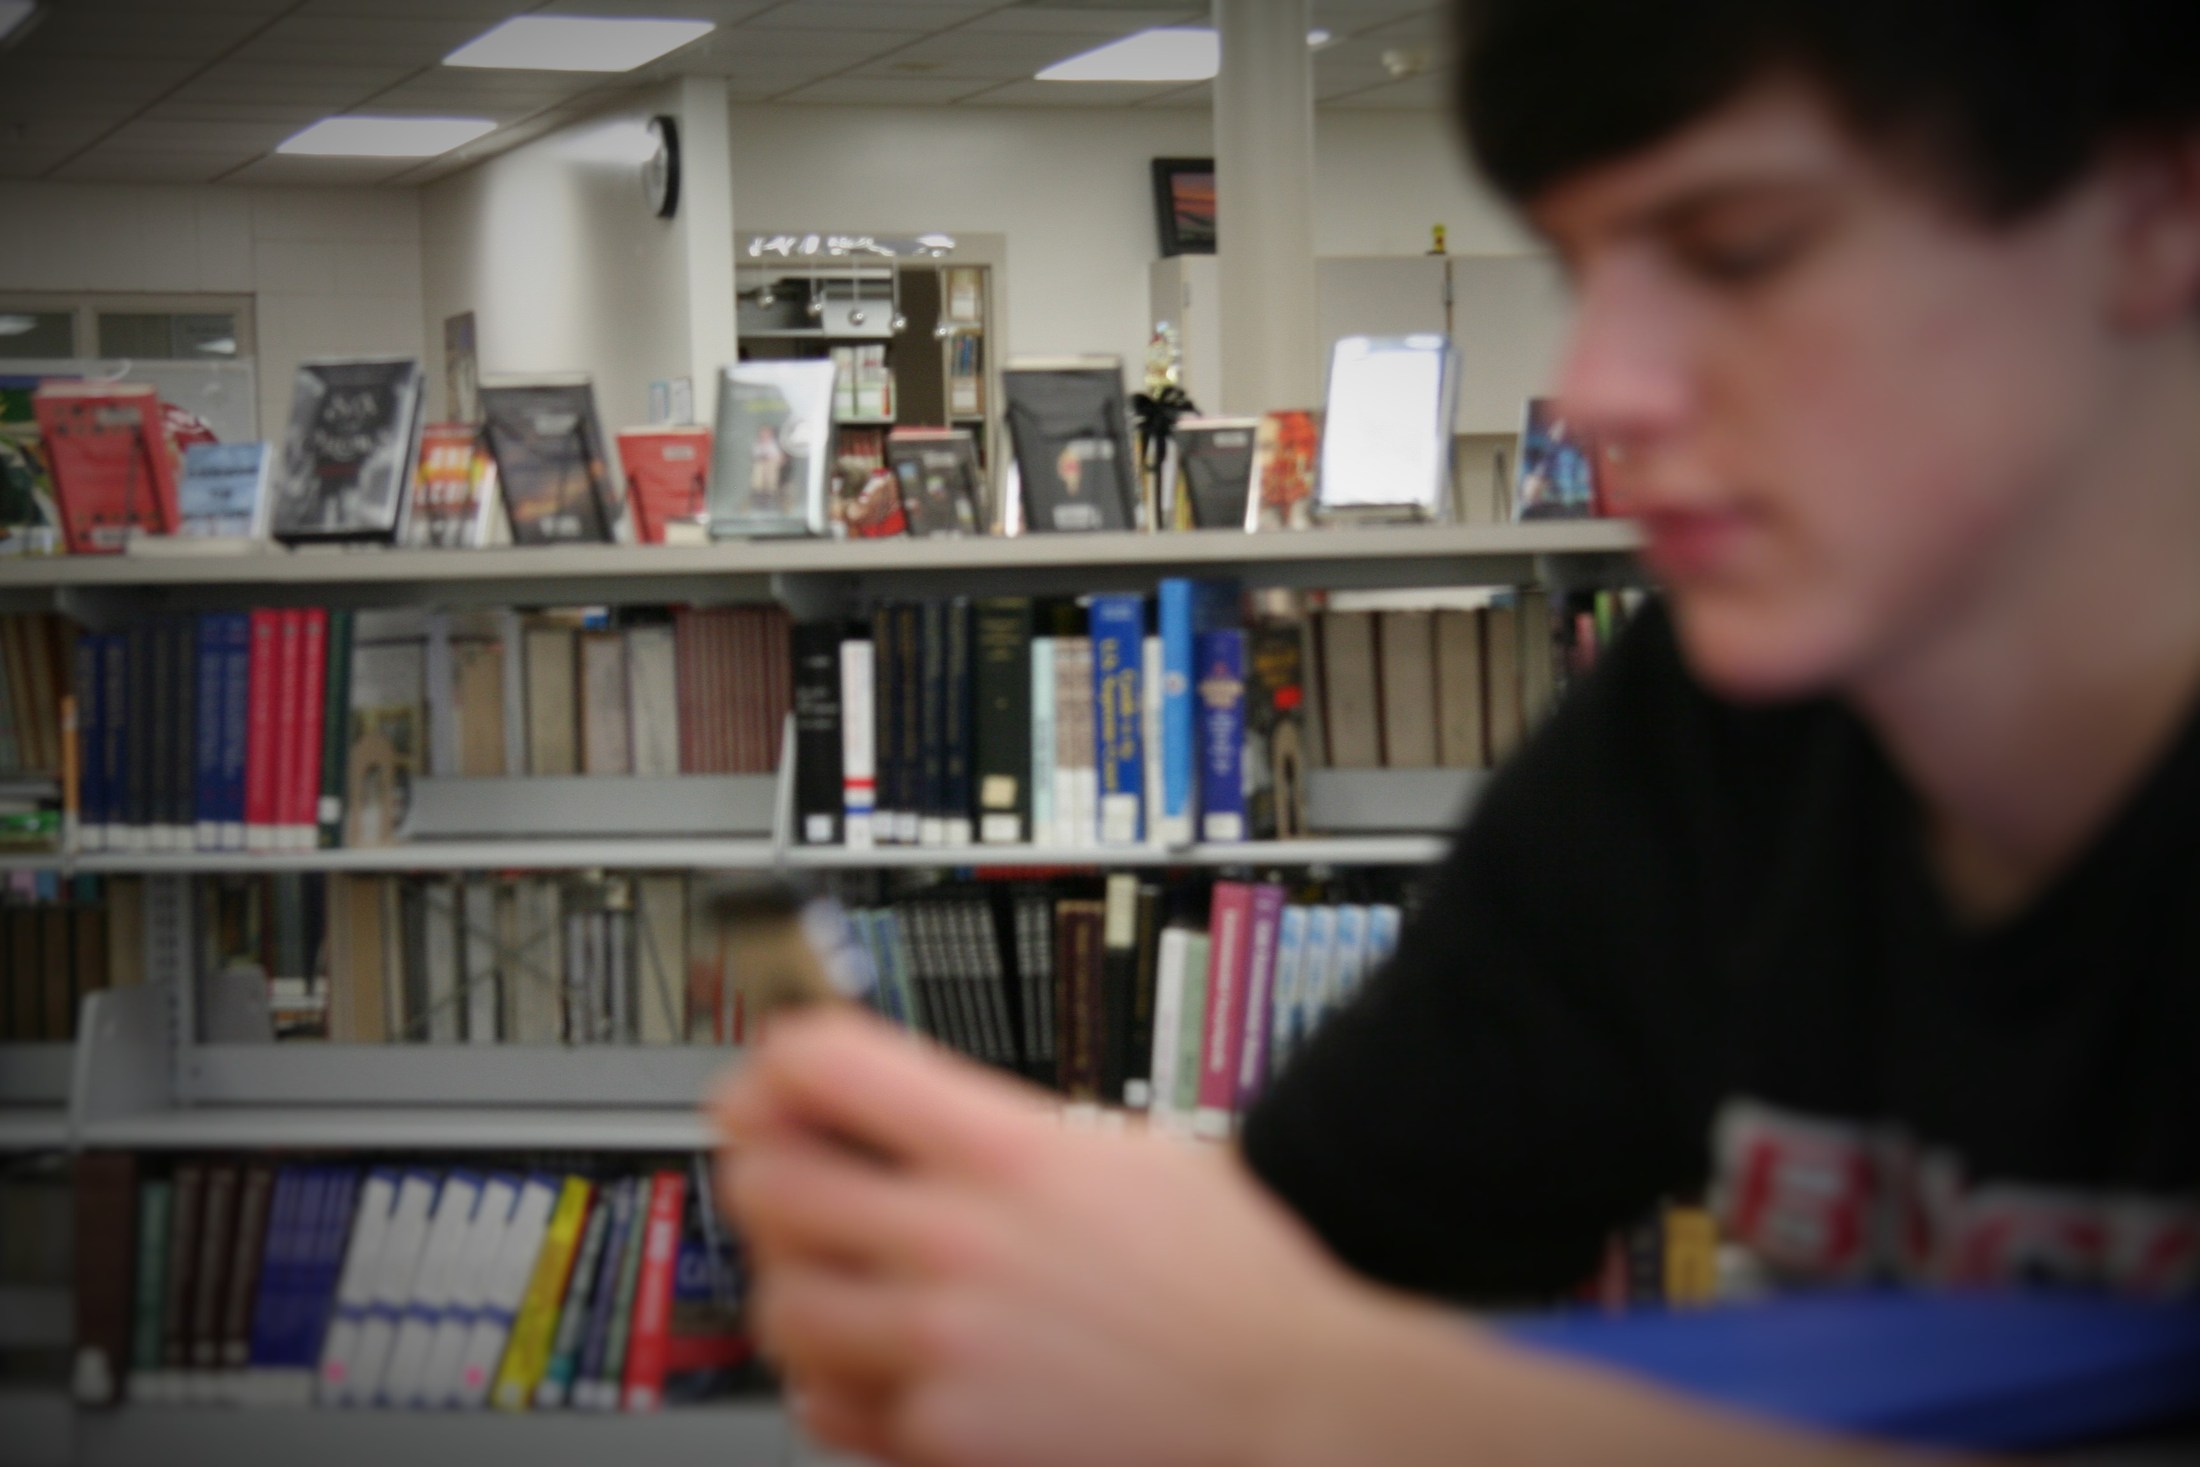 Student in foreground out of focus and books in focus in background